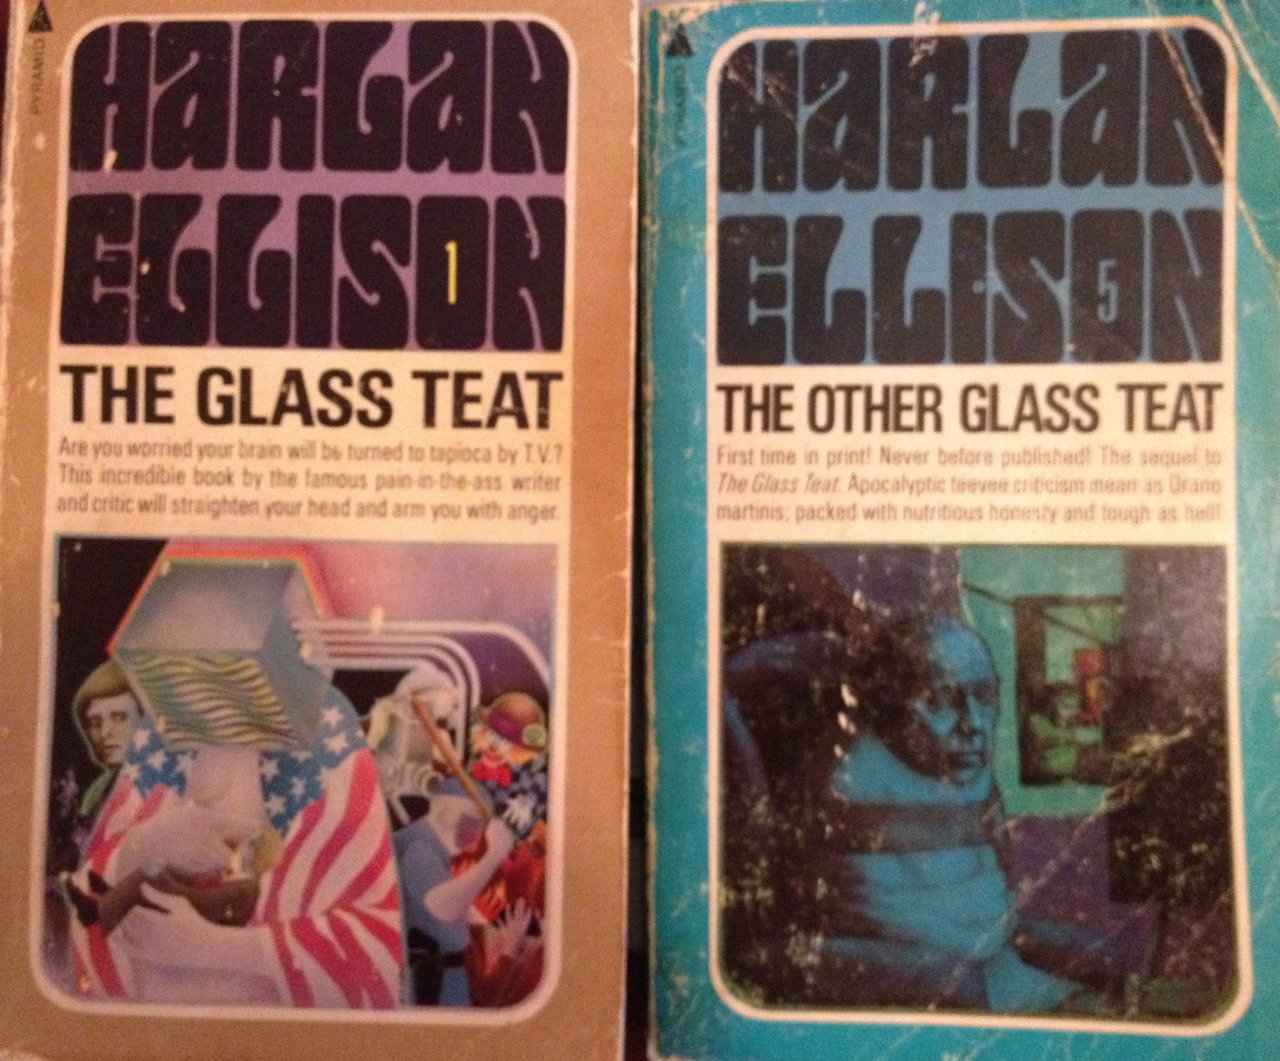 Starting around 1968,  Harlan Ellison  wrote a column of TV criticism for the L.A. Free Press. Ellison, the prolific speculative fiction author and TV writer, railed against the mediocre prime-time offerings of the day, recounted his battles with TV producers who rewrote and botched his scripts, and took shots at the Nixon administration over Vietnam. The stuff hasn't aged all that well, and I won't be buying  the $750 signed limited edition with the updated audio ran t. The material was already dated by the time I got my 13-year-old hands on these books with their references to current events and shows that were already half-forgotten (The Mod Squad, Laugh-In, The Smothers Brothers, Julia, First Tuesday, The Name of the Game, The Ghost and Mrs. Muir). I am impressed Ellison managed to watch so much TV without benefit of a VCR or DVR. For me, the books are a sort of personal museum for the 13-year-old me who found resonance in Ellison's boiling, foul-mouthed rage at mass culture. His take on one week's top Nielsen's ratings:      Six of the 10 leading items are wafer-thin, inane, excruciatingly banal situation comedies dealing with a view of American home life that simply does not exist save in the minds of polyannas and outpatients from the Menninger Foundation. .. While their world gets ripped along the dotted line, the average middle-class consumer-slaphappy American opts for escapist entertainment of the most vapid sort. …No wonder [there is] such umbrage and outrage by the masscult mind at the doings of the Revolution: they sit night in and night out sucking up fantasy that tells them even hillbilly idiots with billions living in Beverly Hills are just plain folks.